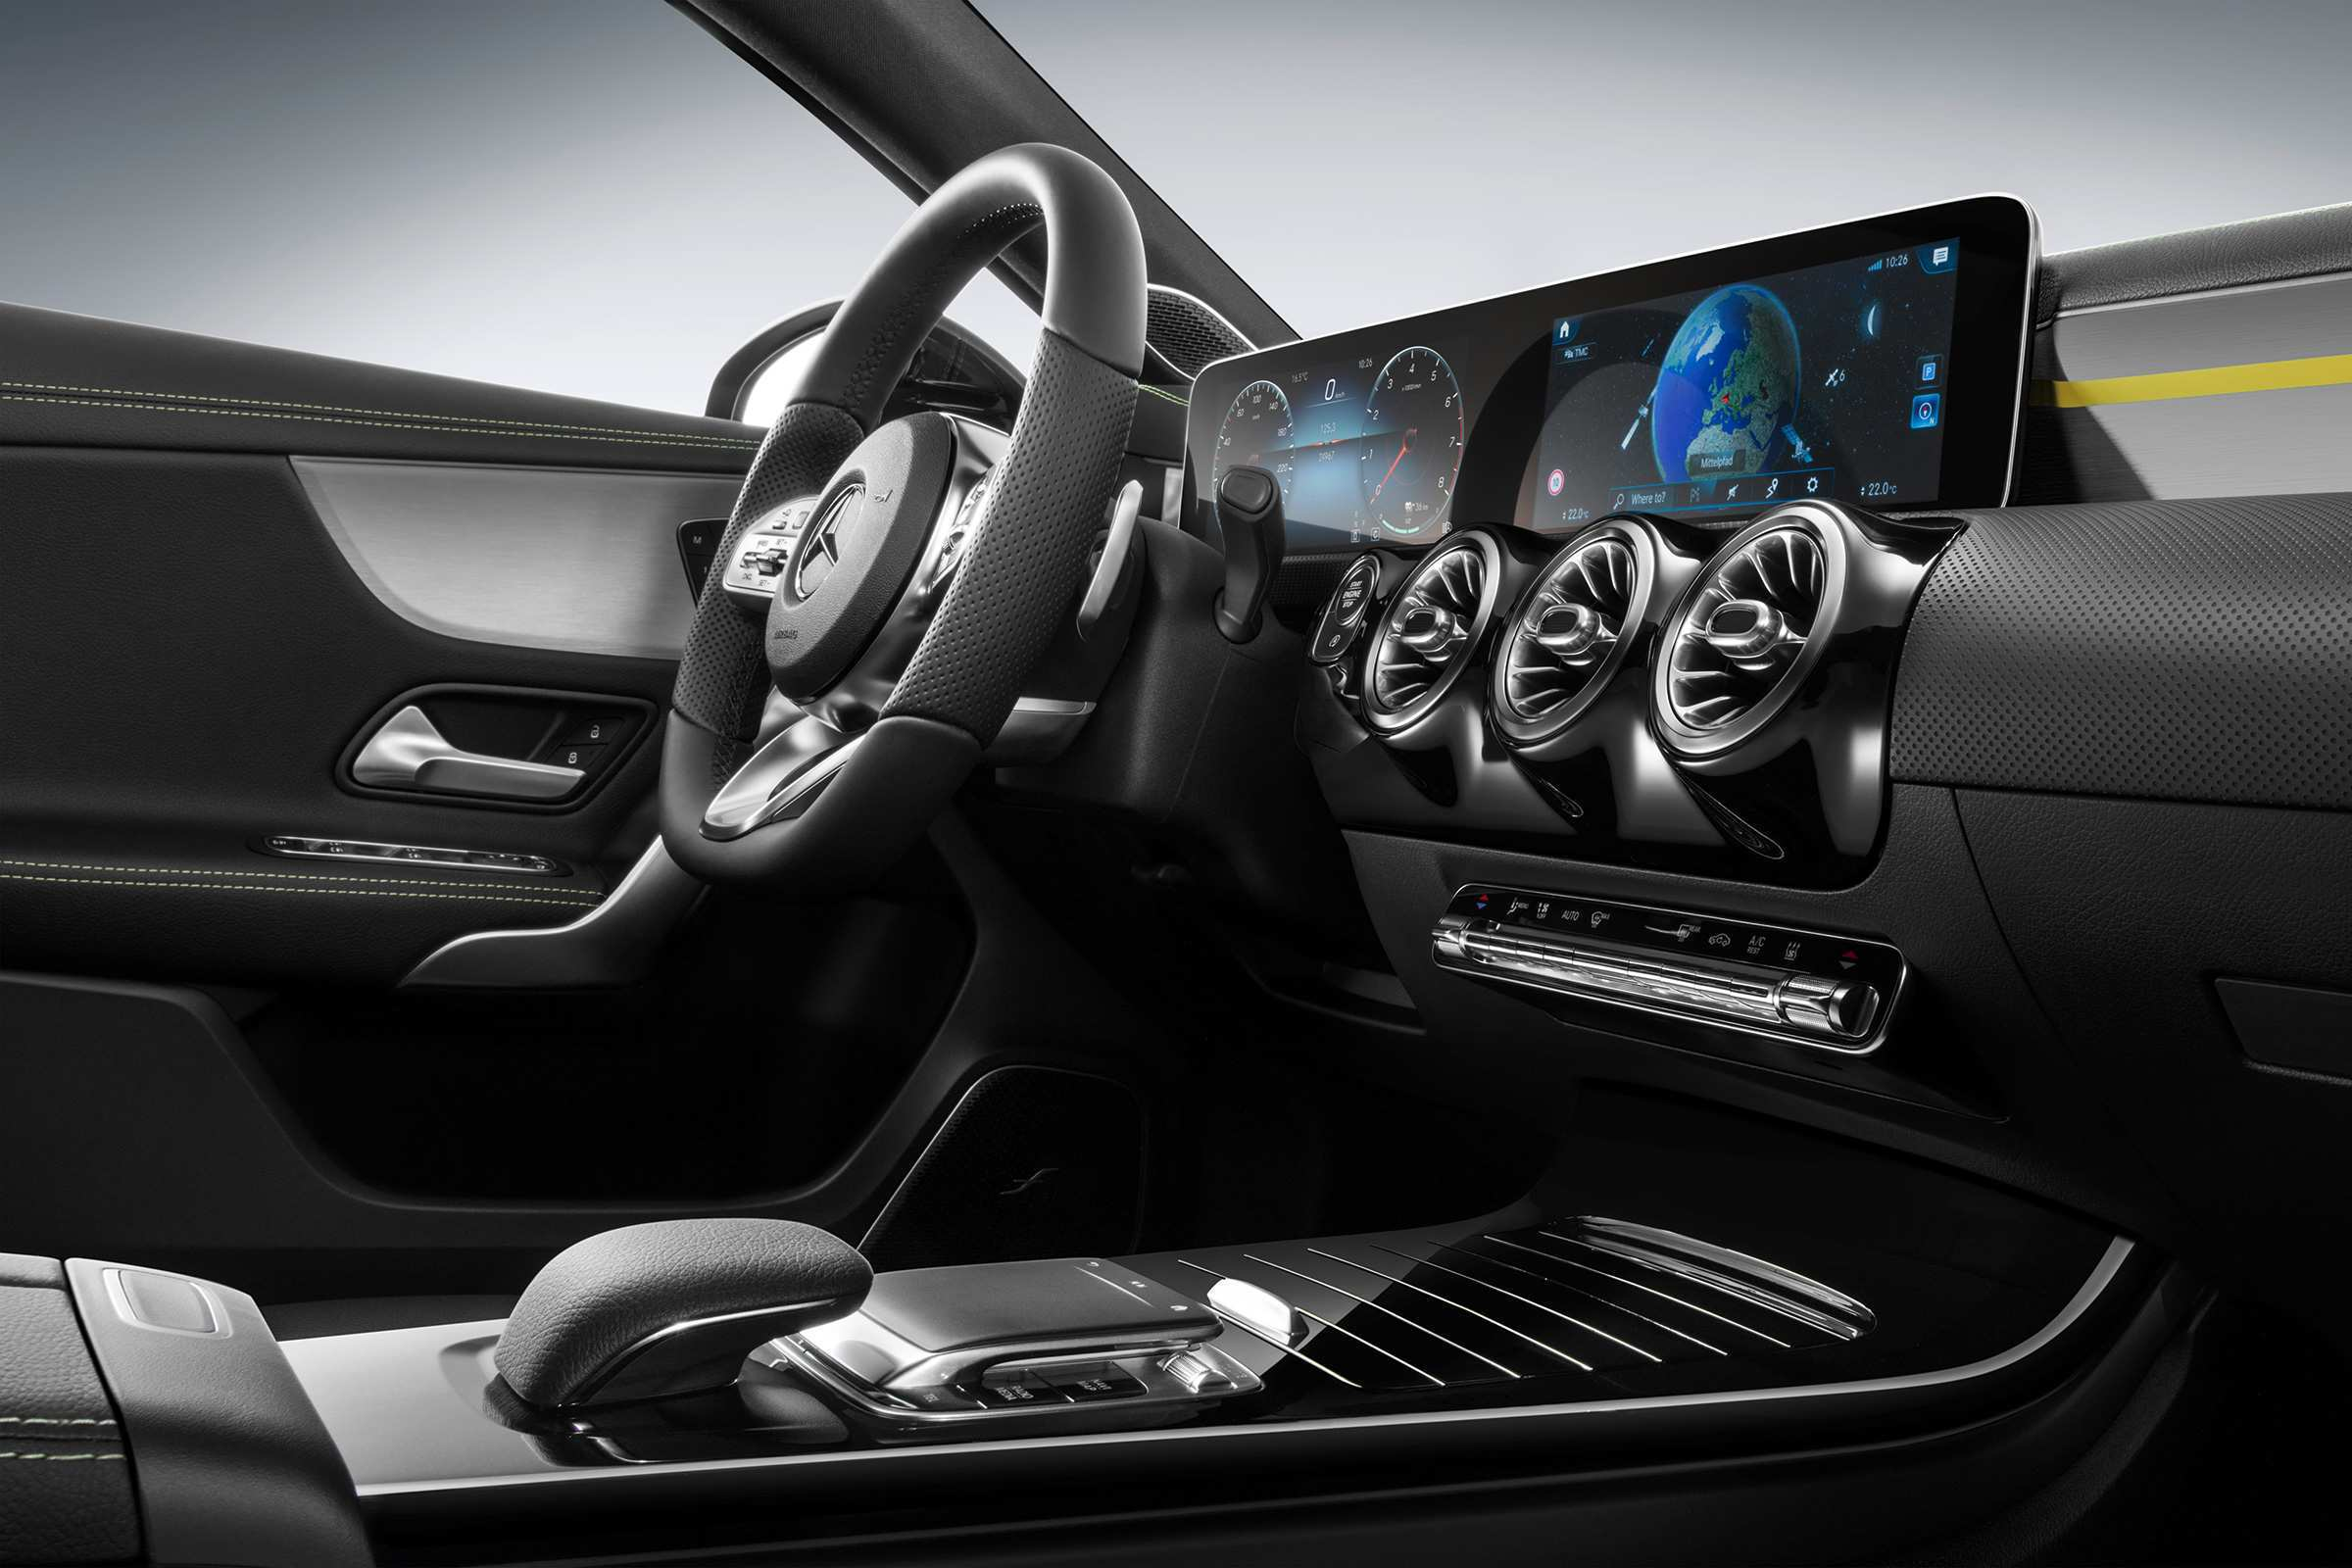 43 Concept of Mercedes Interior 2019 Rumors by Mercedes Interior 2019